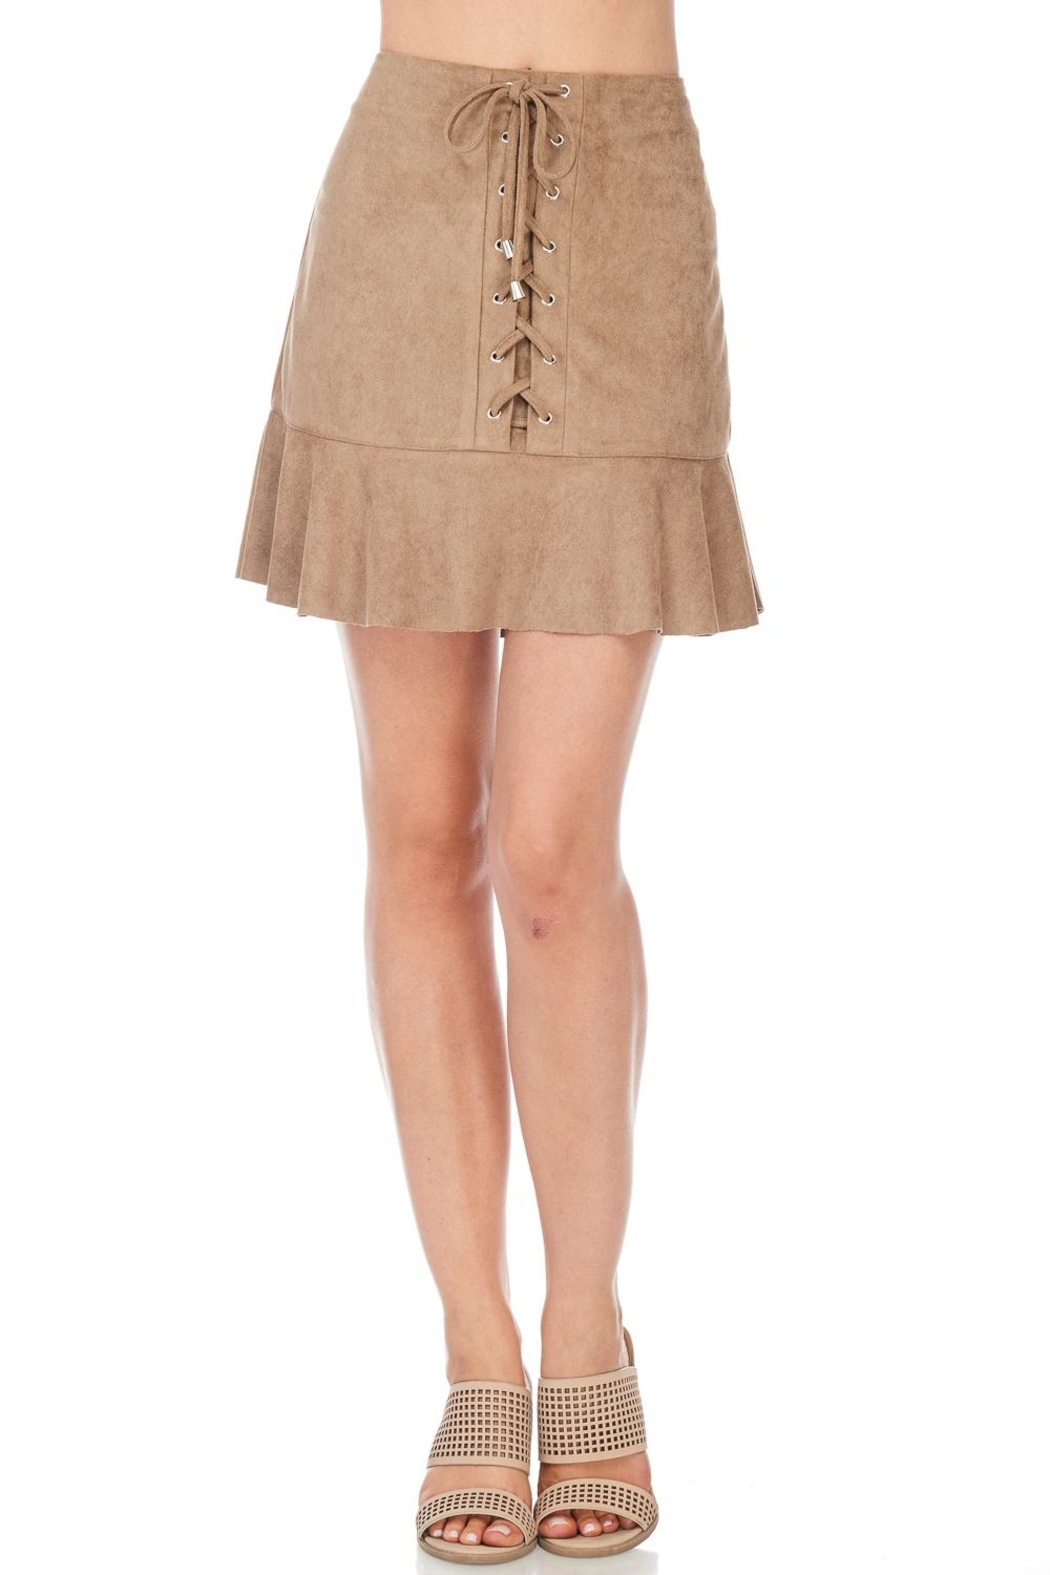 She + Sky Suede Laceup Skirt - Main Image